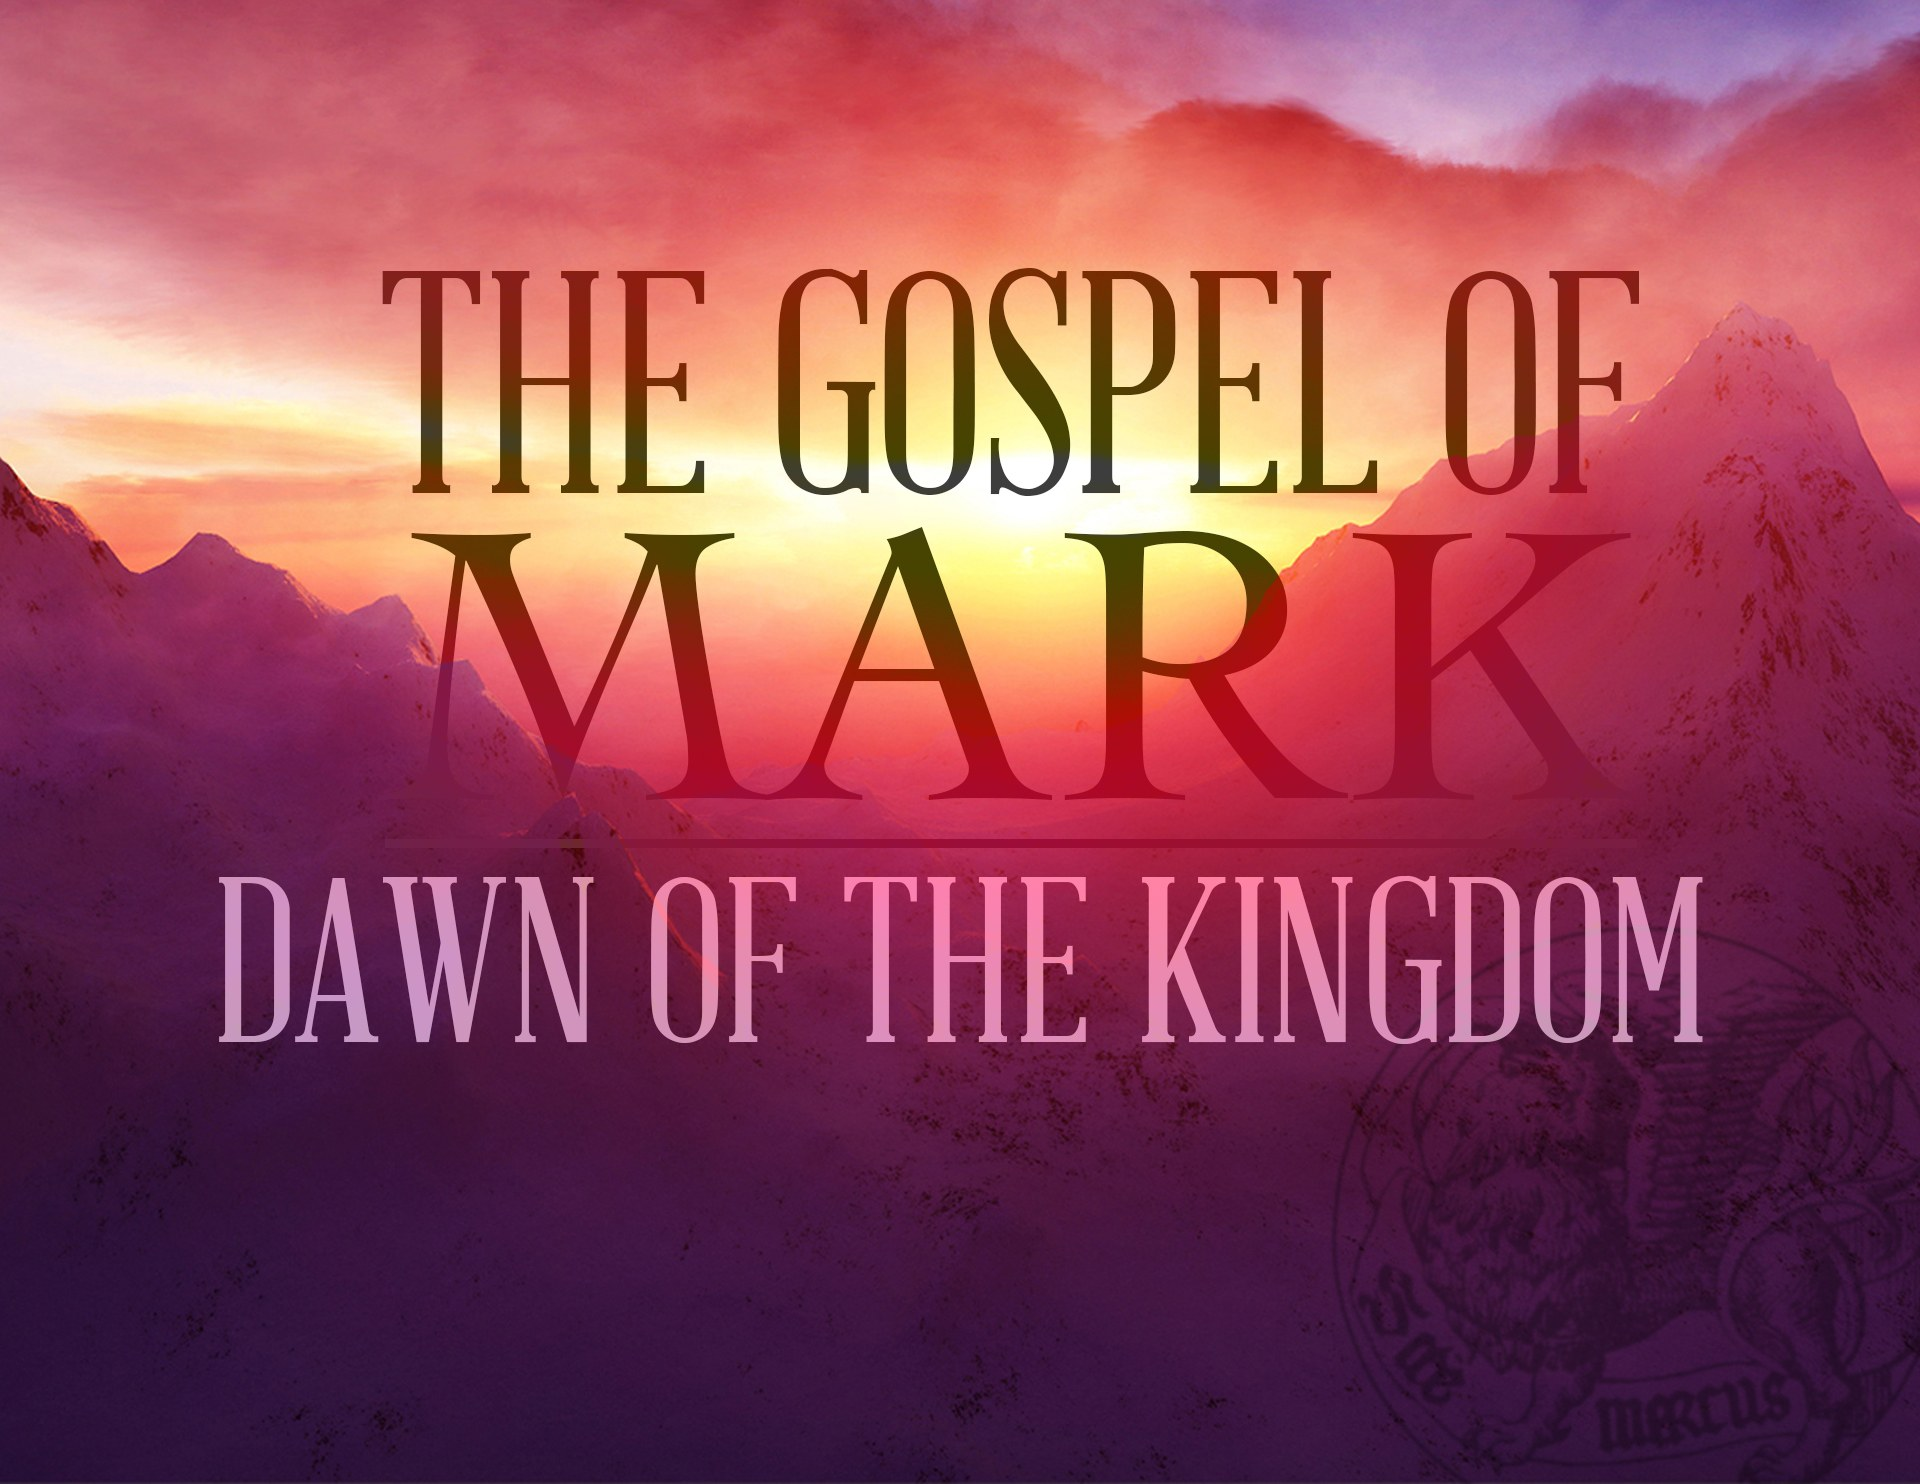 View all sermons in Mark: Dawn of the Kingdom